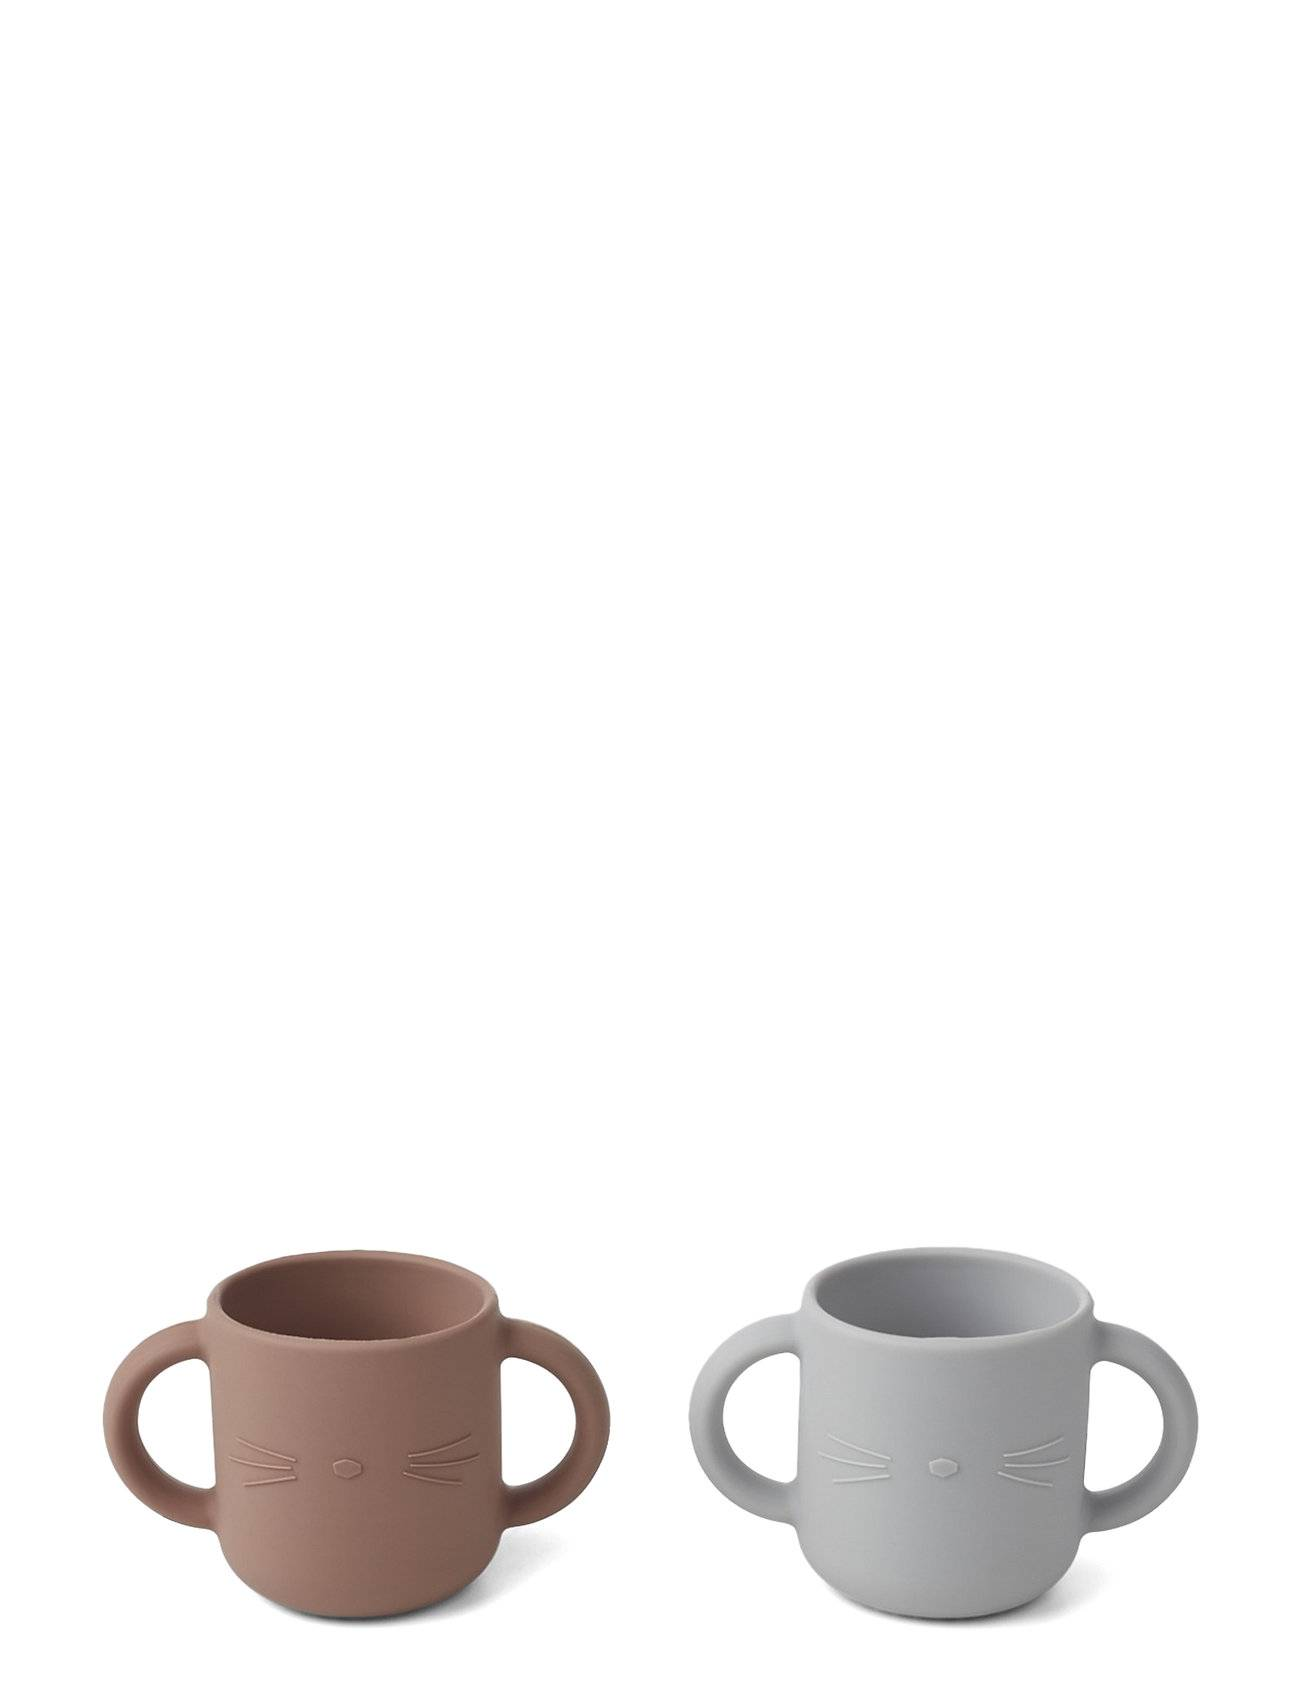 Liewood Gene Silic Cup - 2 Pack Home Meal Time Ruskea Liewood